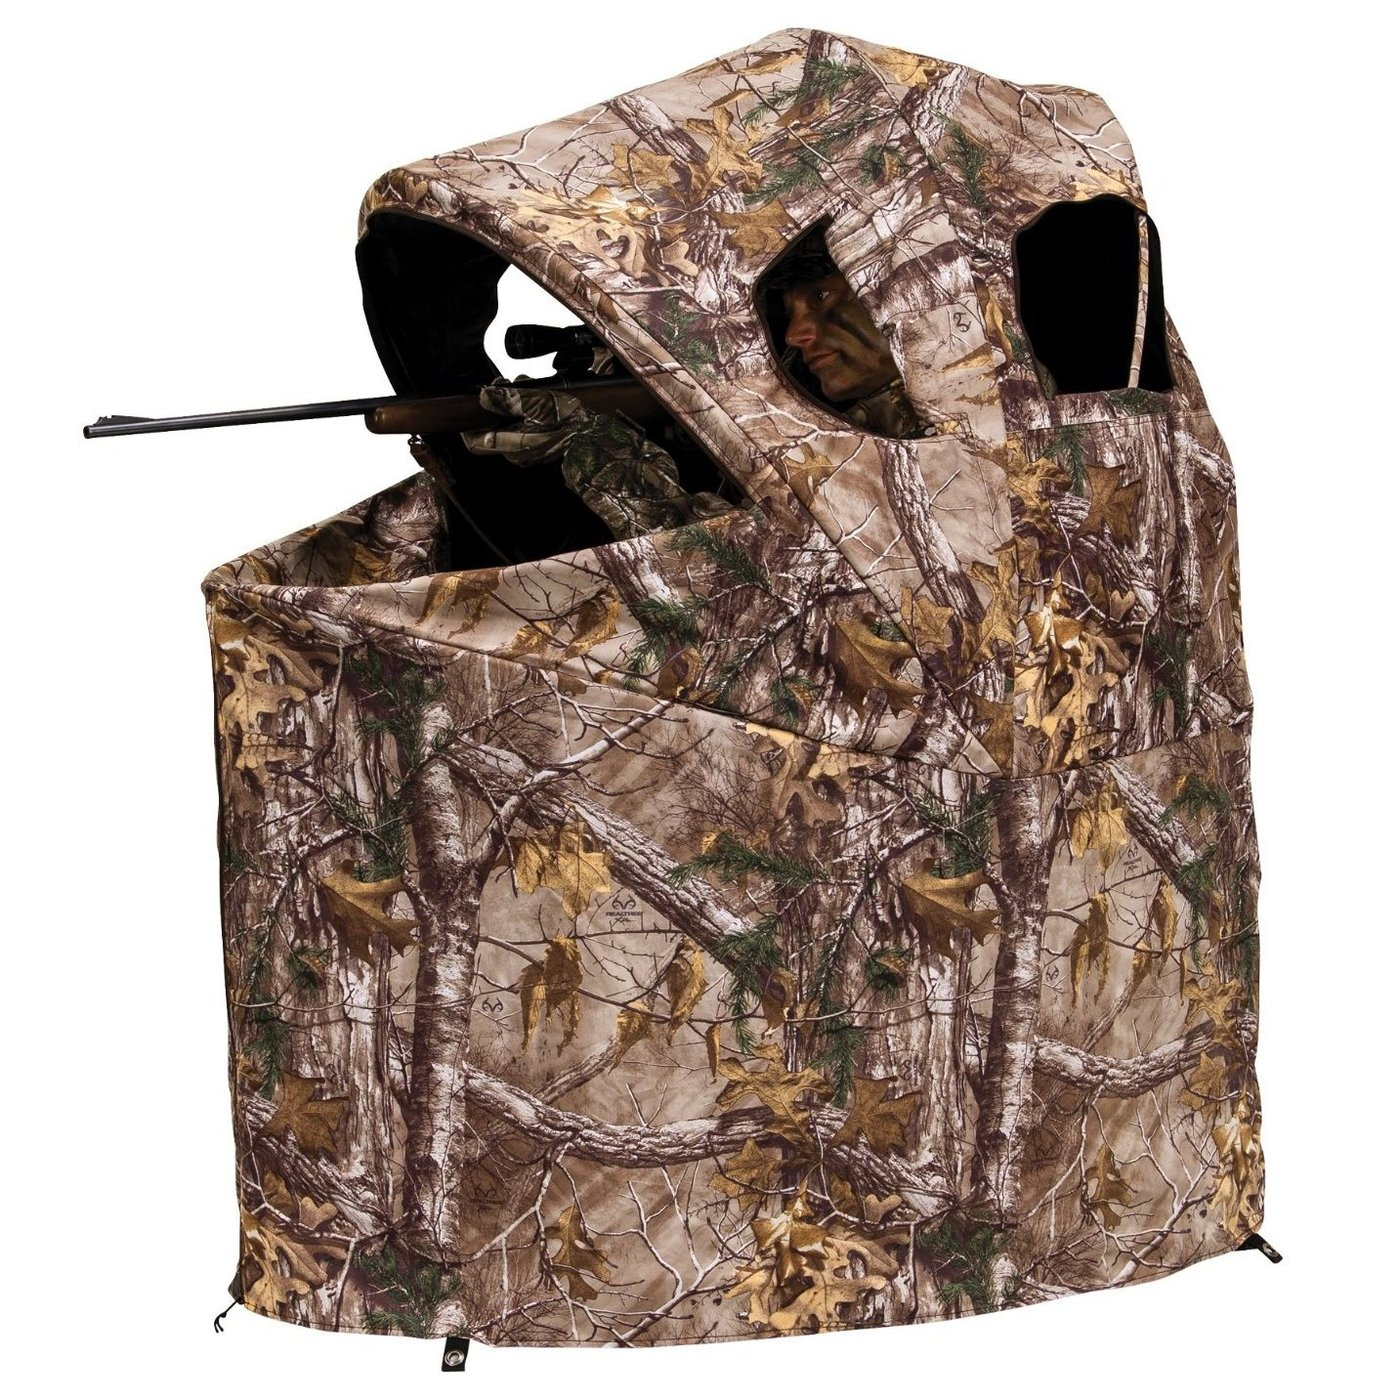 best hunting chair blind armless lounge the ultimate buyer s guide to chairs in my opinion ameristep tent is also good for two persons this comes attached with side zipper windows and large front